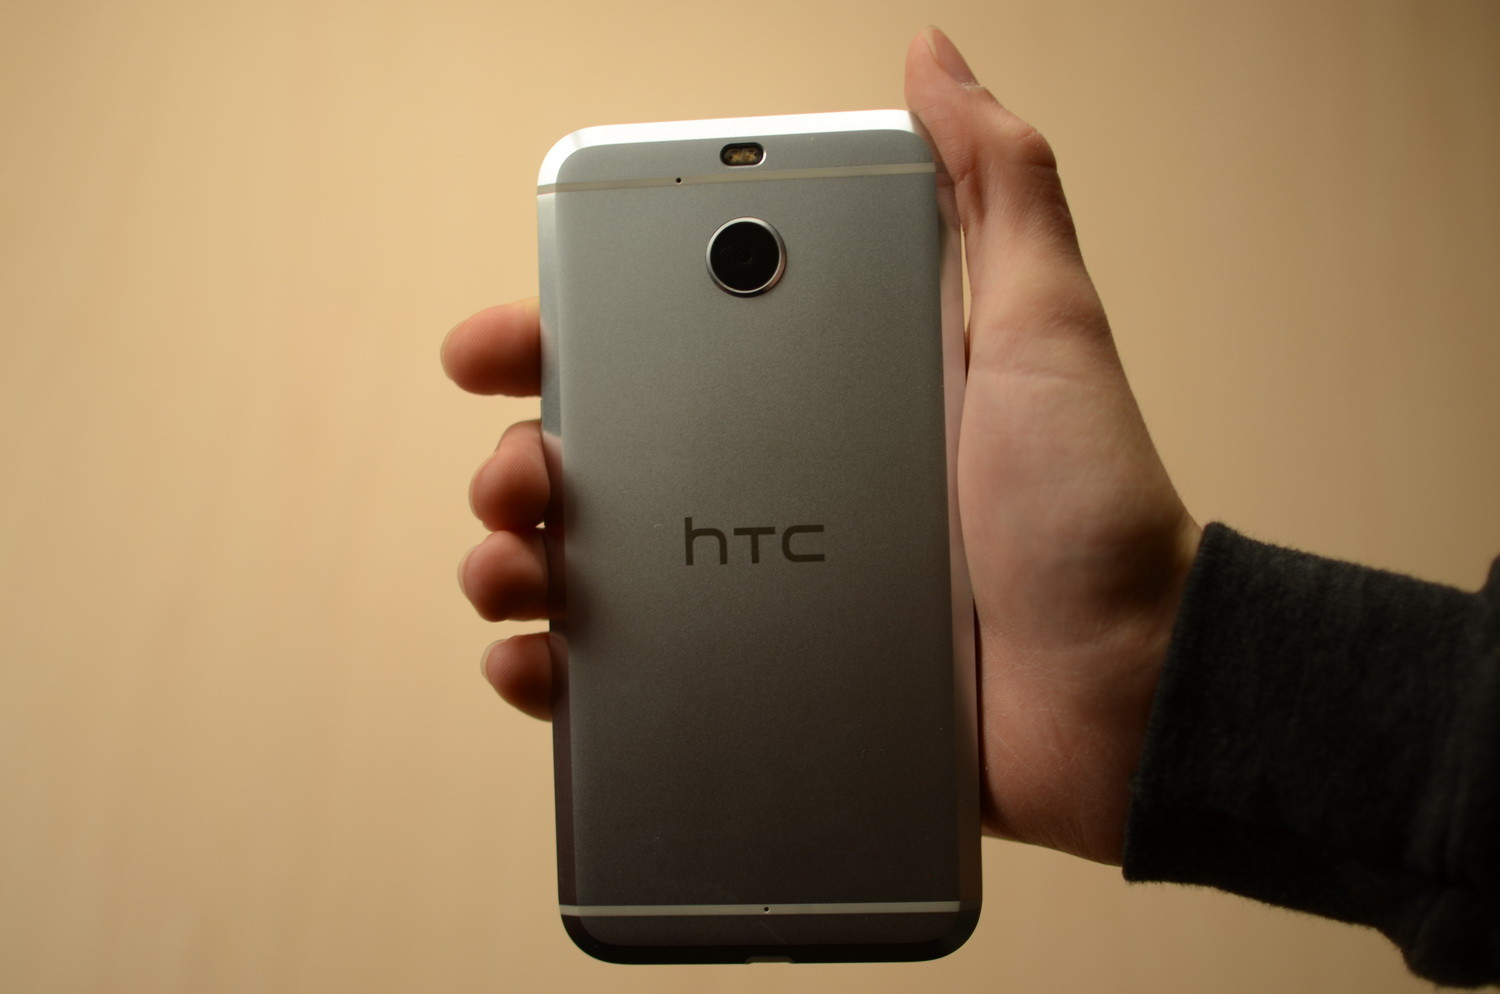 htc-bolt-hardware